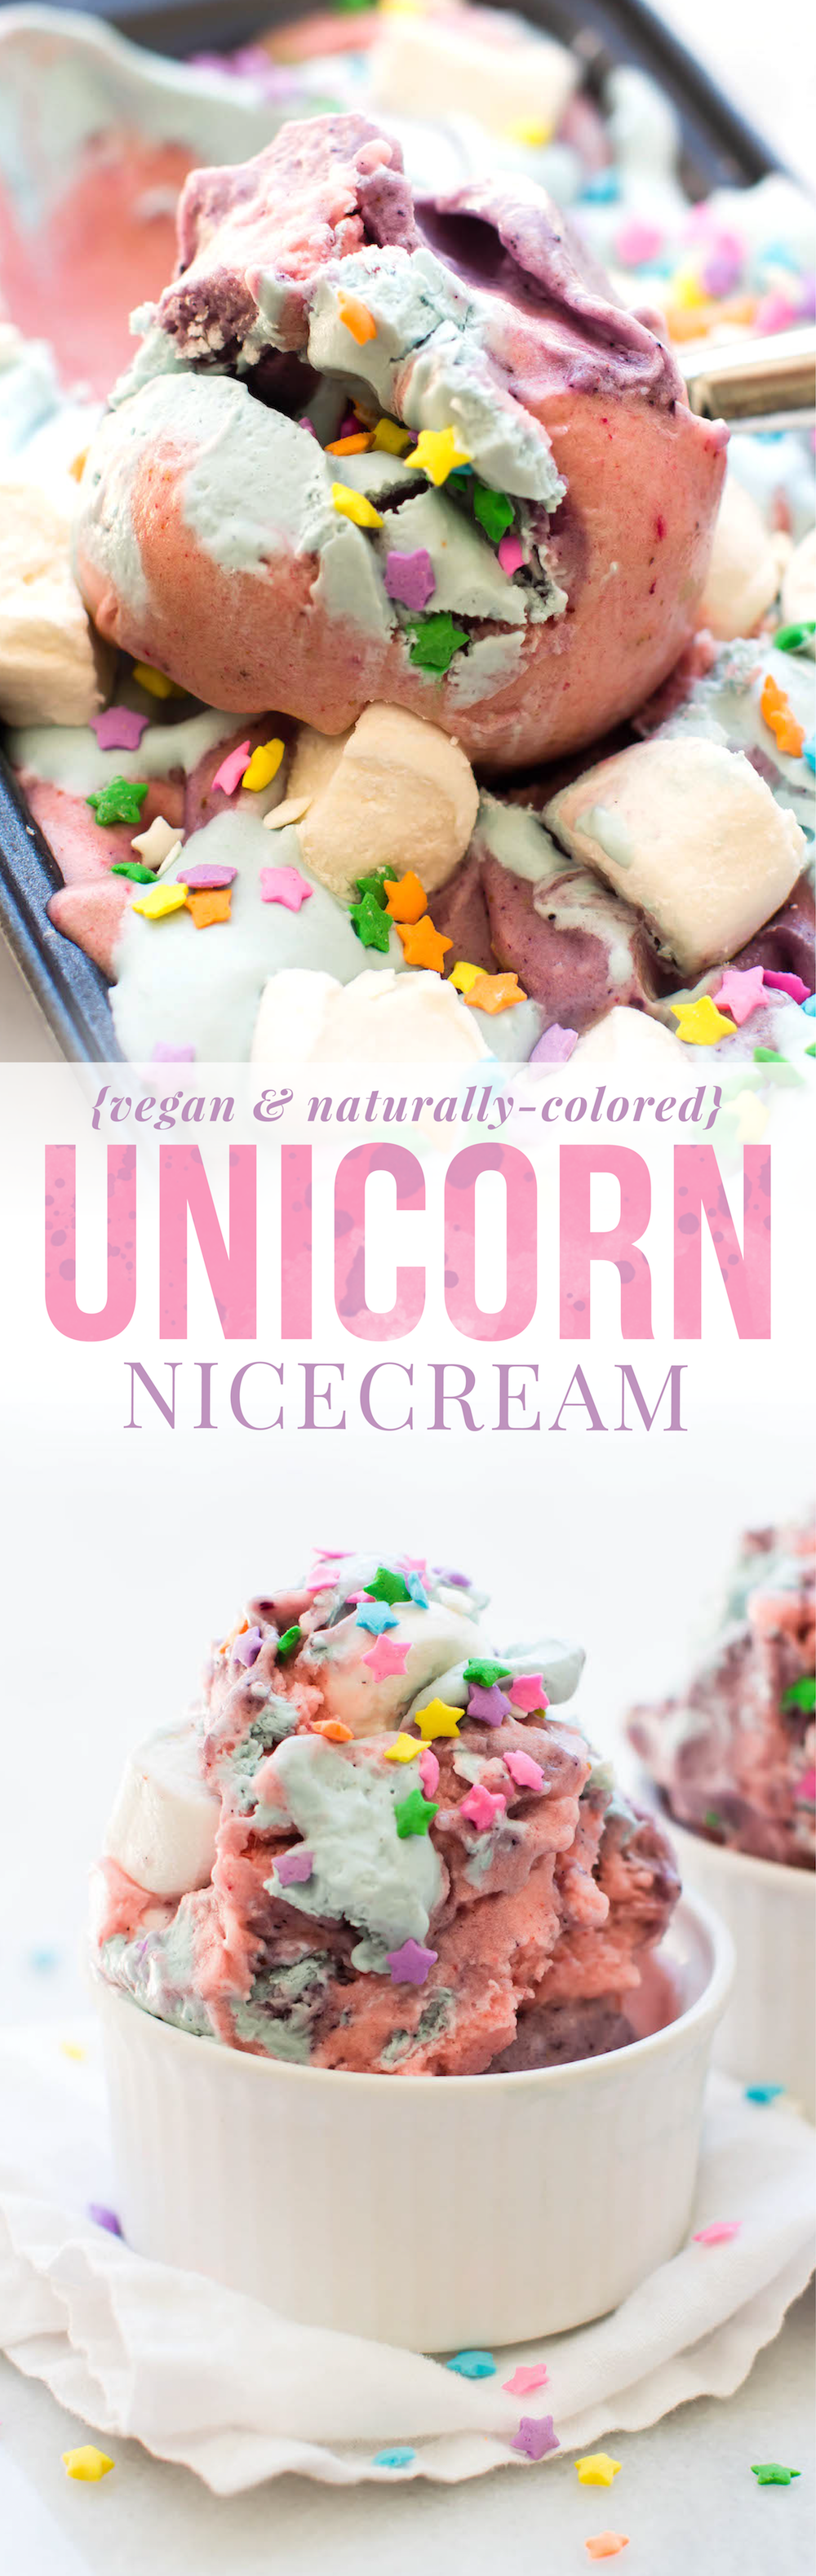 Vegan Unicorn Nice Cream